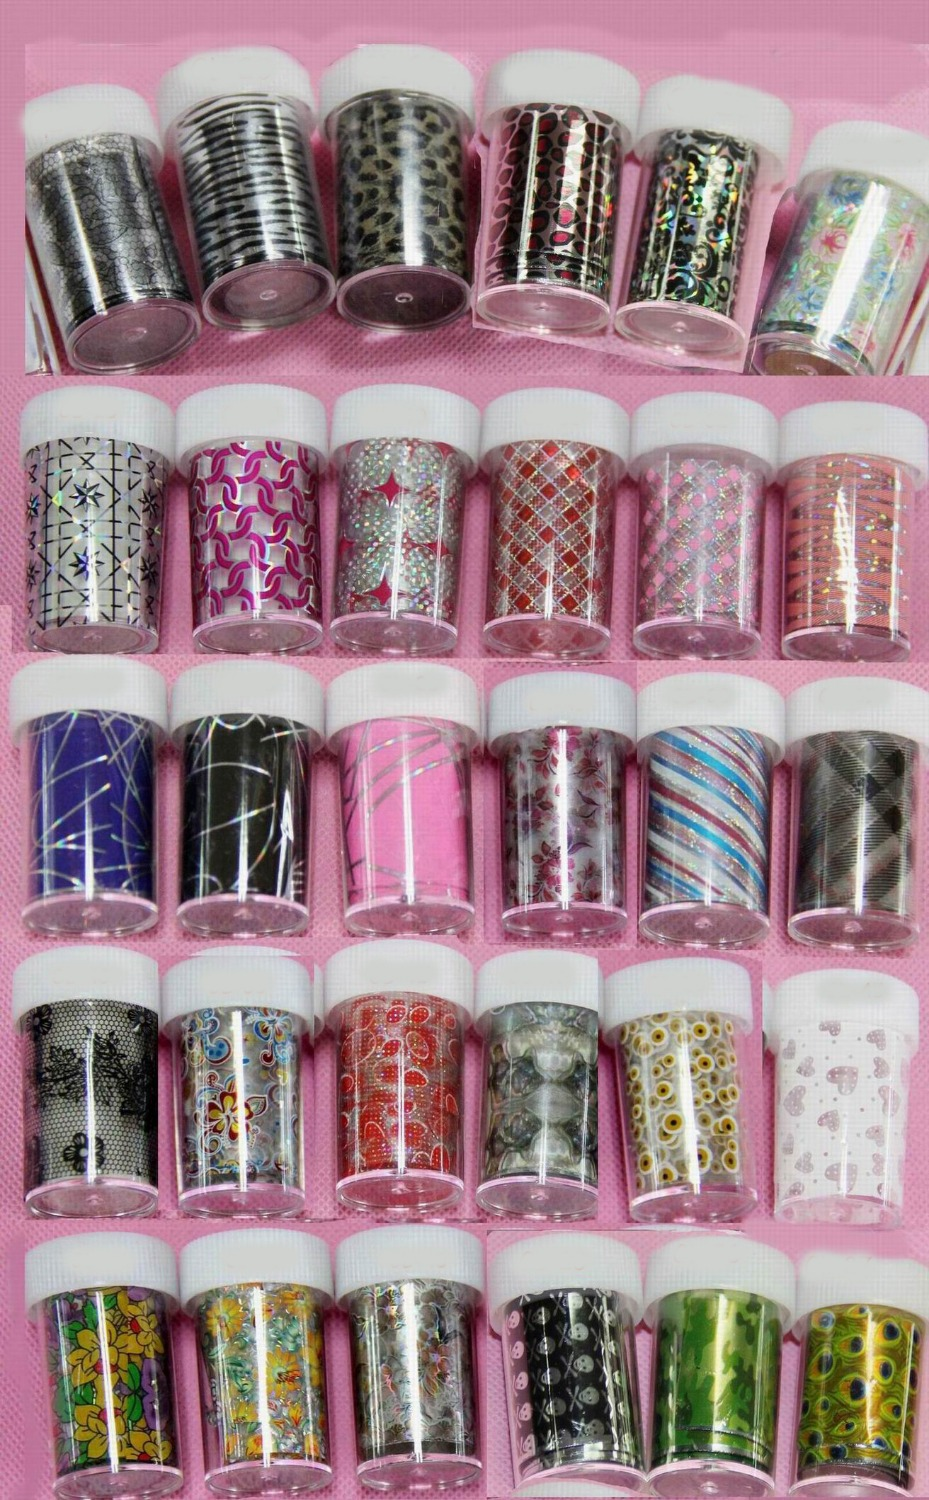 30 Rolls Glitter Nail Art Wrap Nail Transfer Foil Peacock Leopard Flowers Heart Design Free Shipping(China (Mainland))